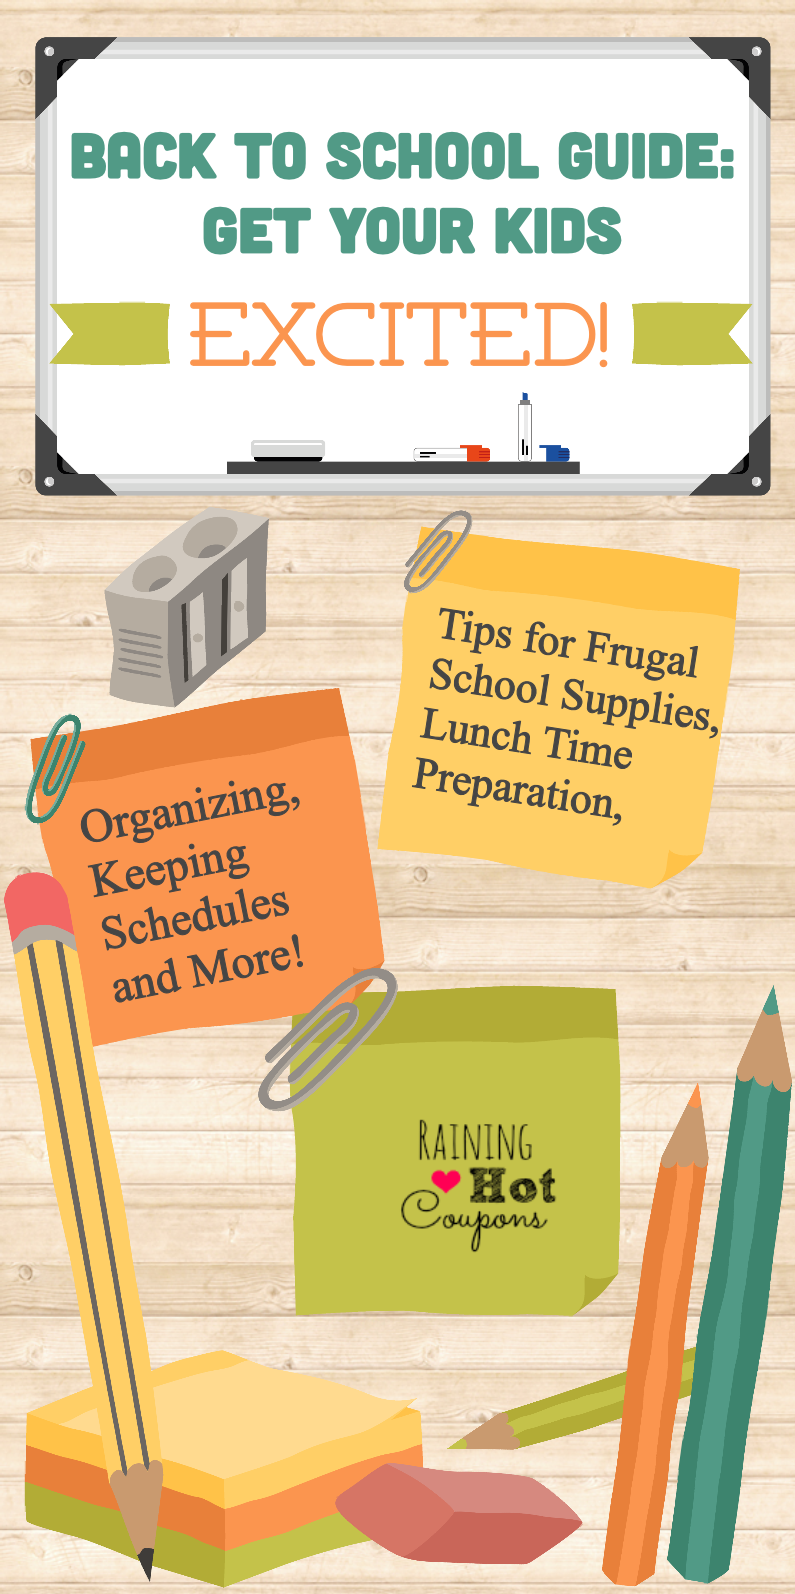 BacktoschoolGraphic Back to School Guide: Tips for Saving Money on Supplies, Lunch Time, Schedules and More!